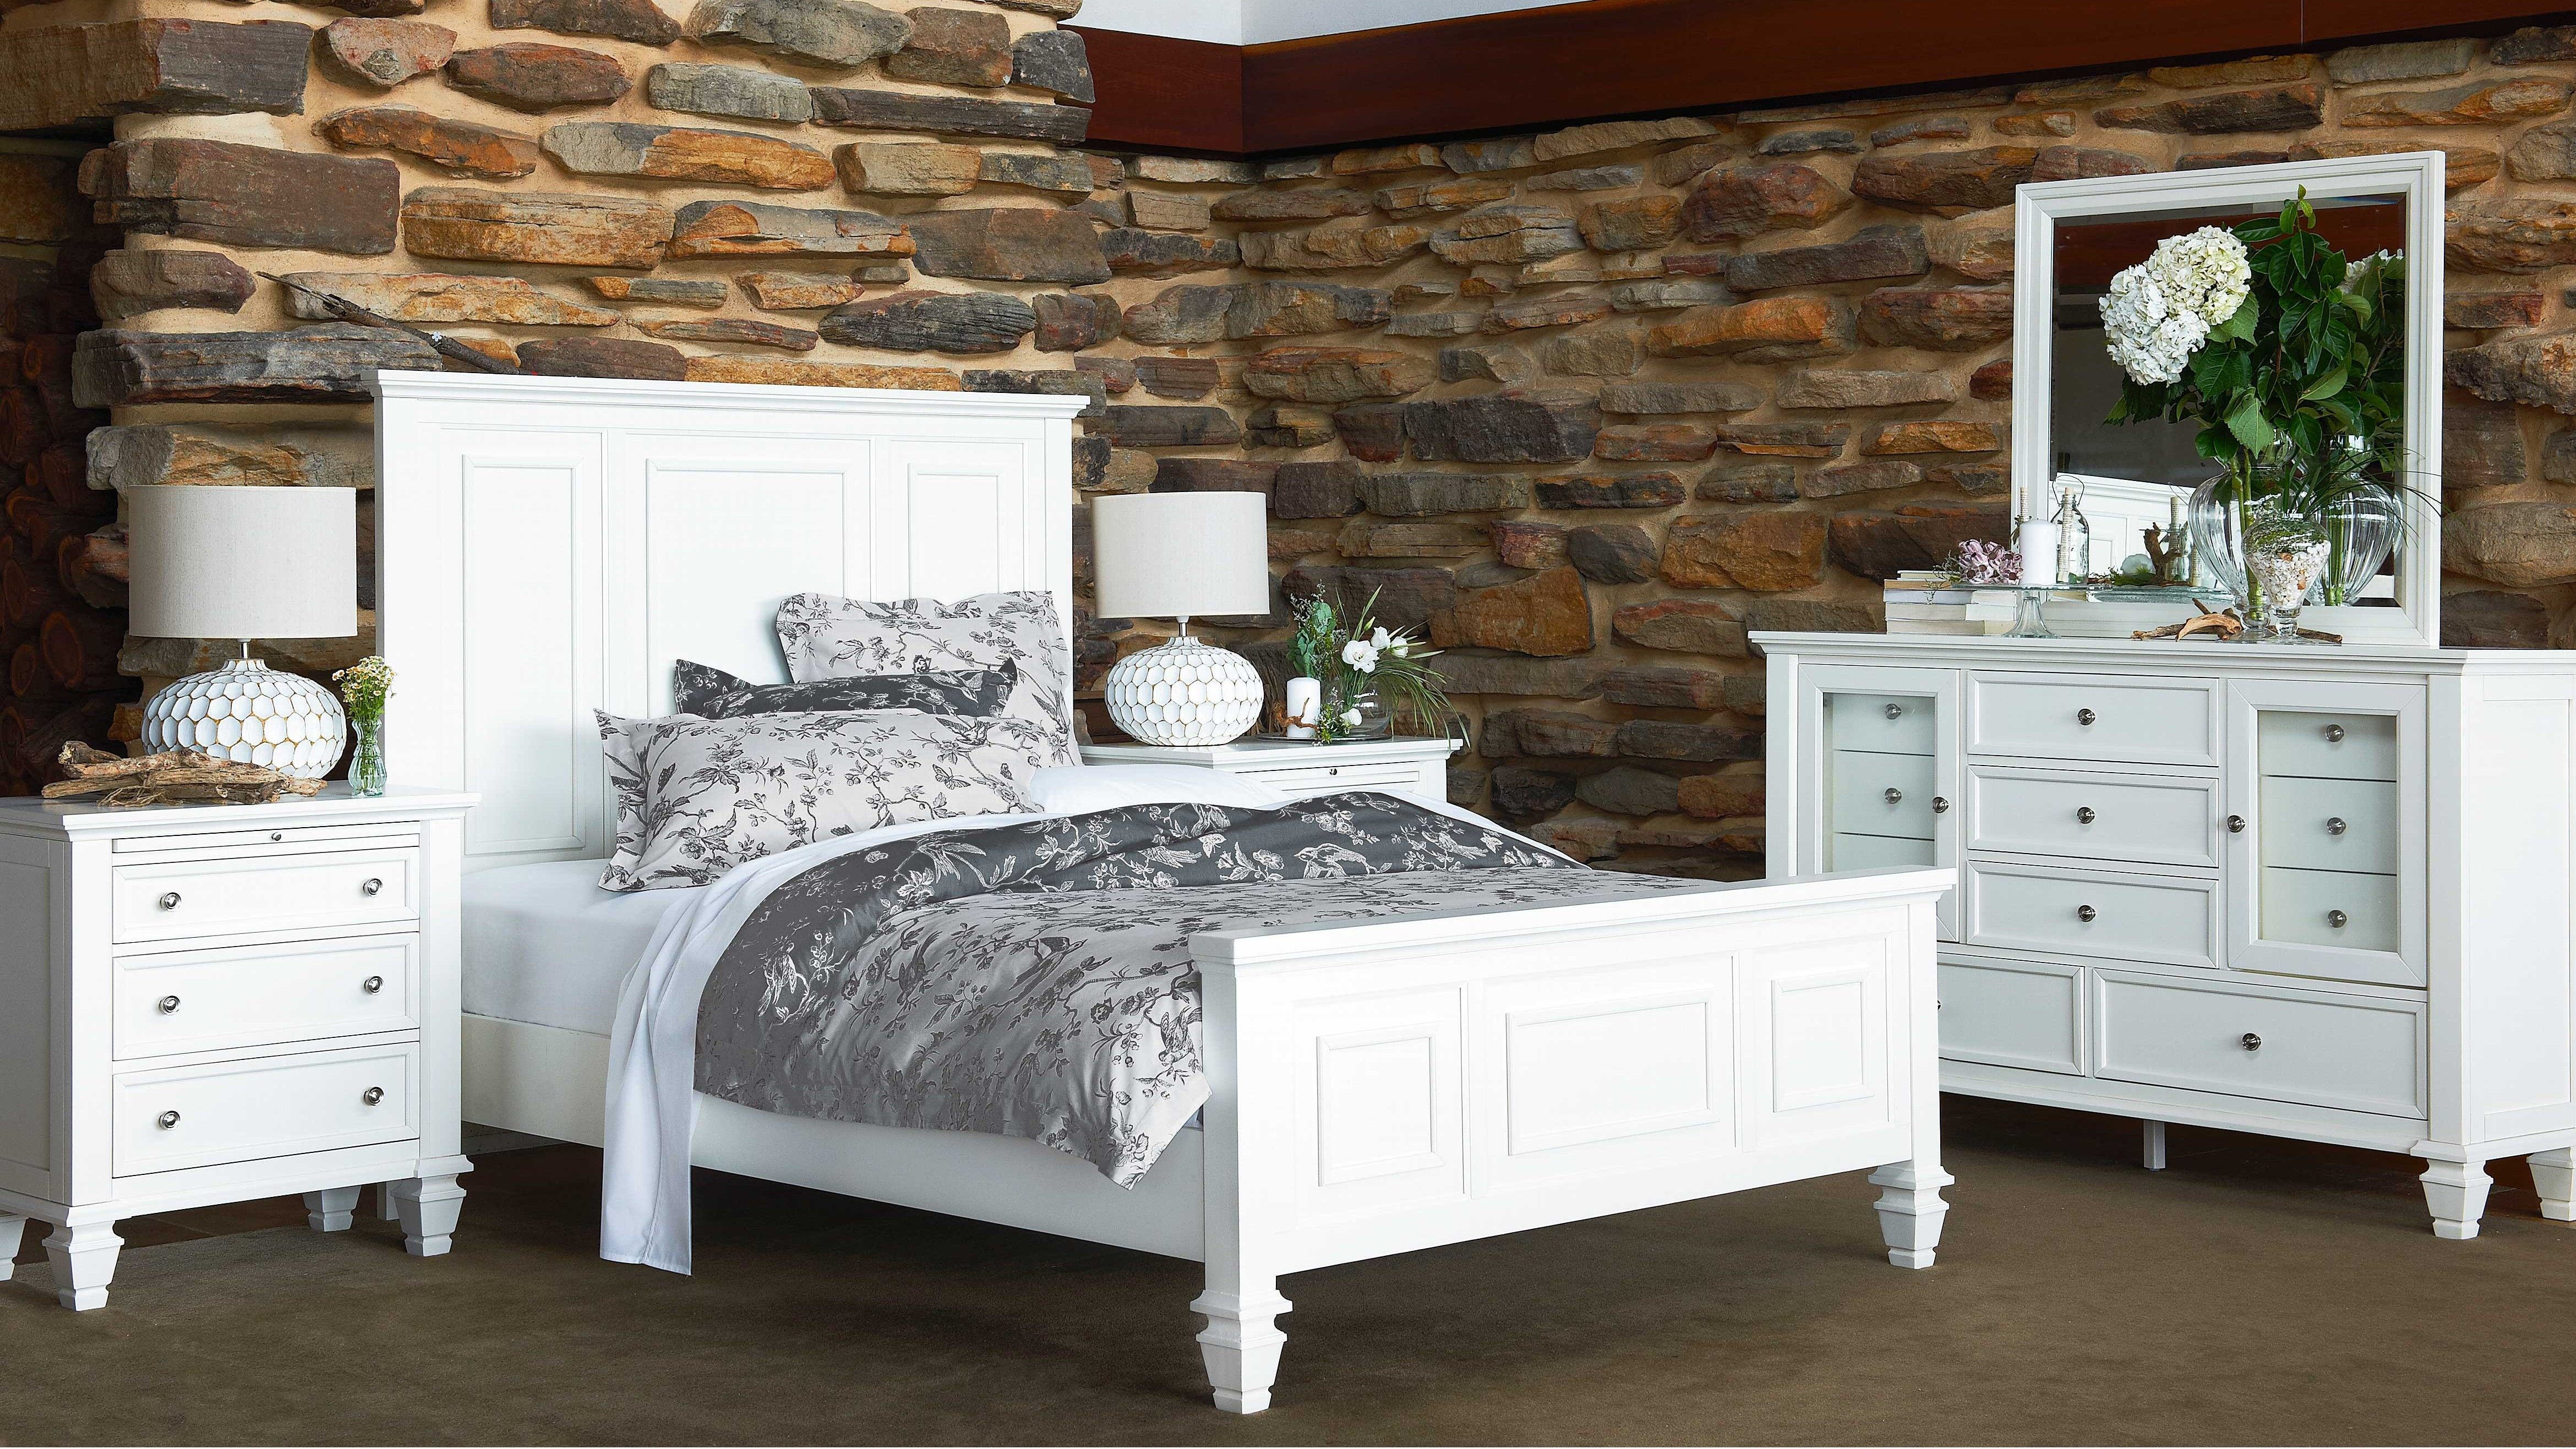 Lovely Bedroom Package Available From Harvey Norman. Glenmore 4 Piece Bedroom  Suite With Dresser U0026 Bedside Tables.